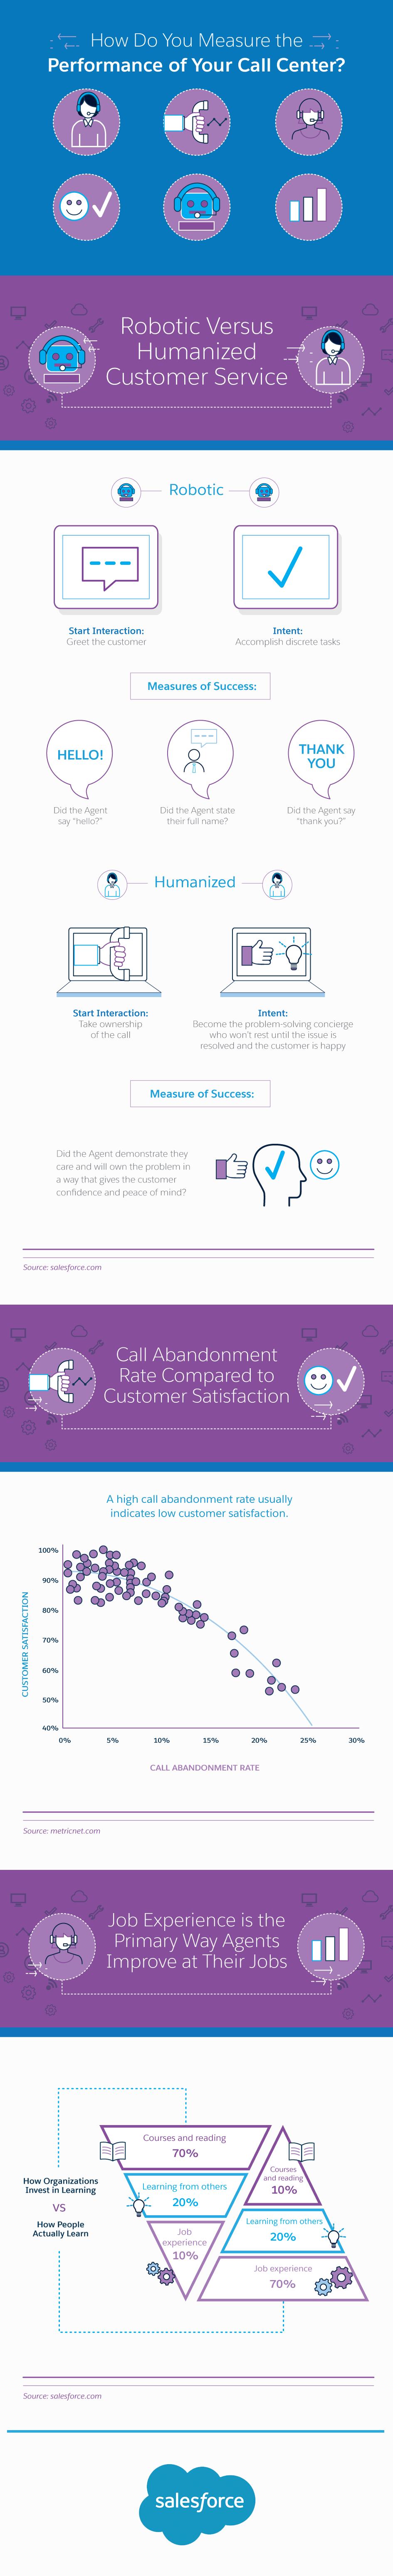 How Do You Measure the Performance of Your Call Center Infographic